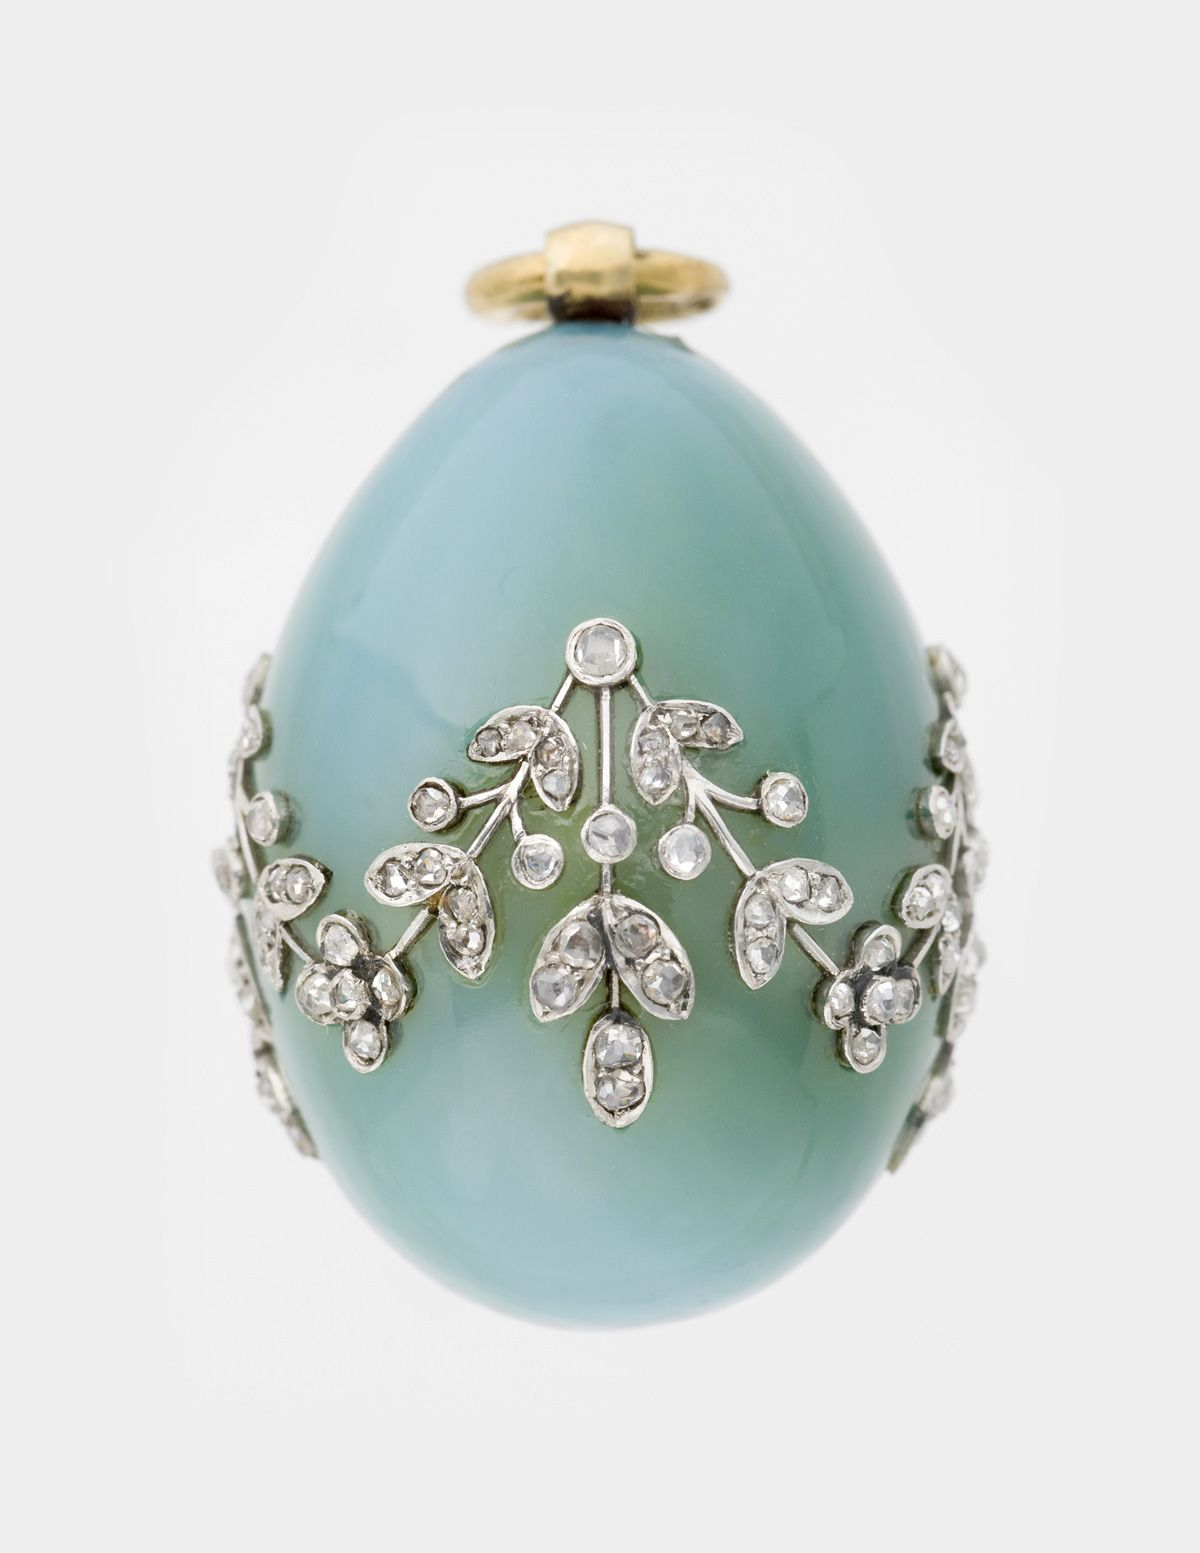 Peter karl faberg russian 1846 1920 miniature easter egg peter karl faberg russian 1846 1920 miniature easter egg pendant mozeypictures Gallery